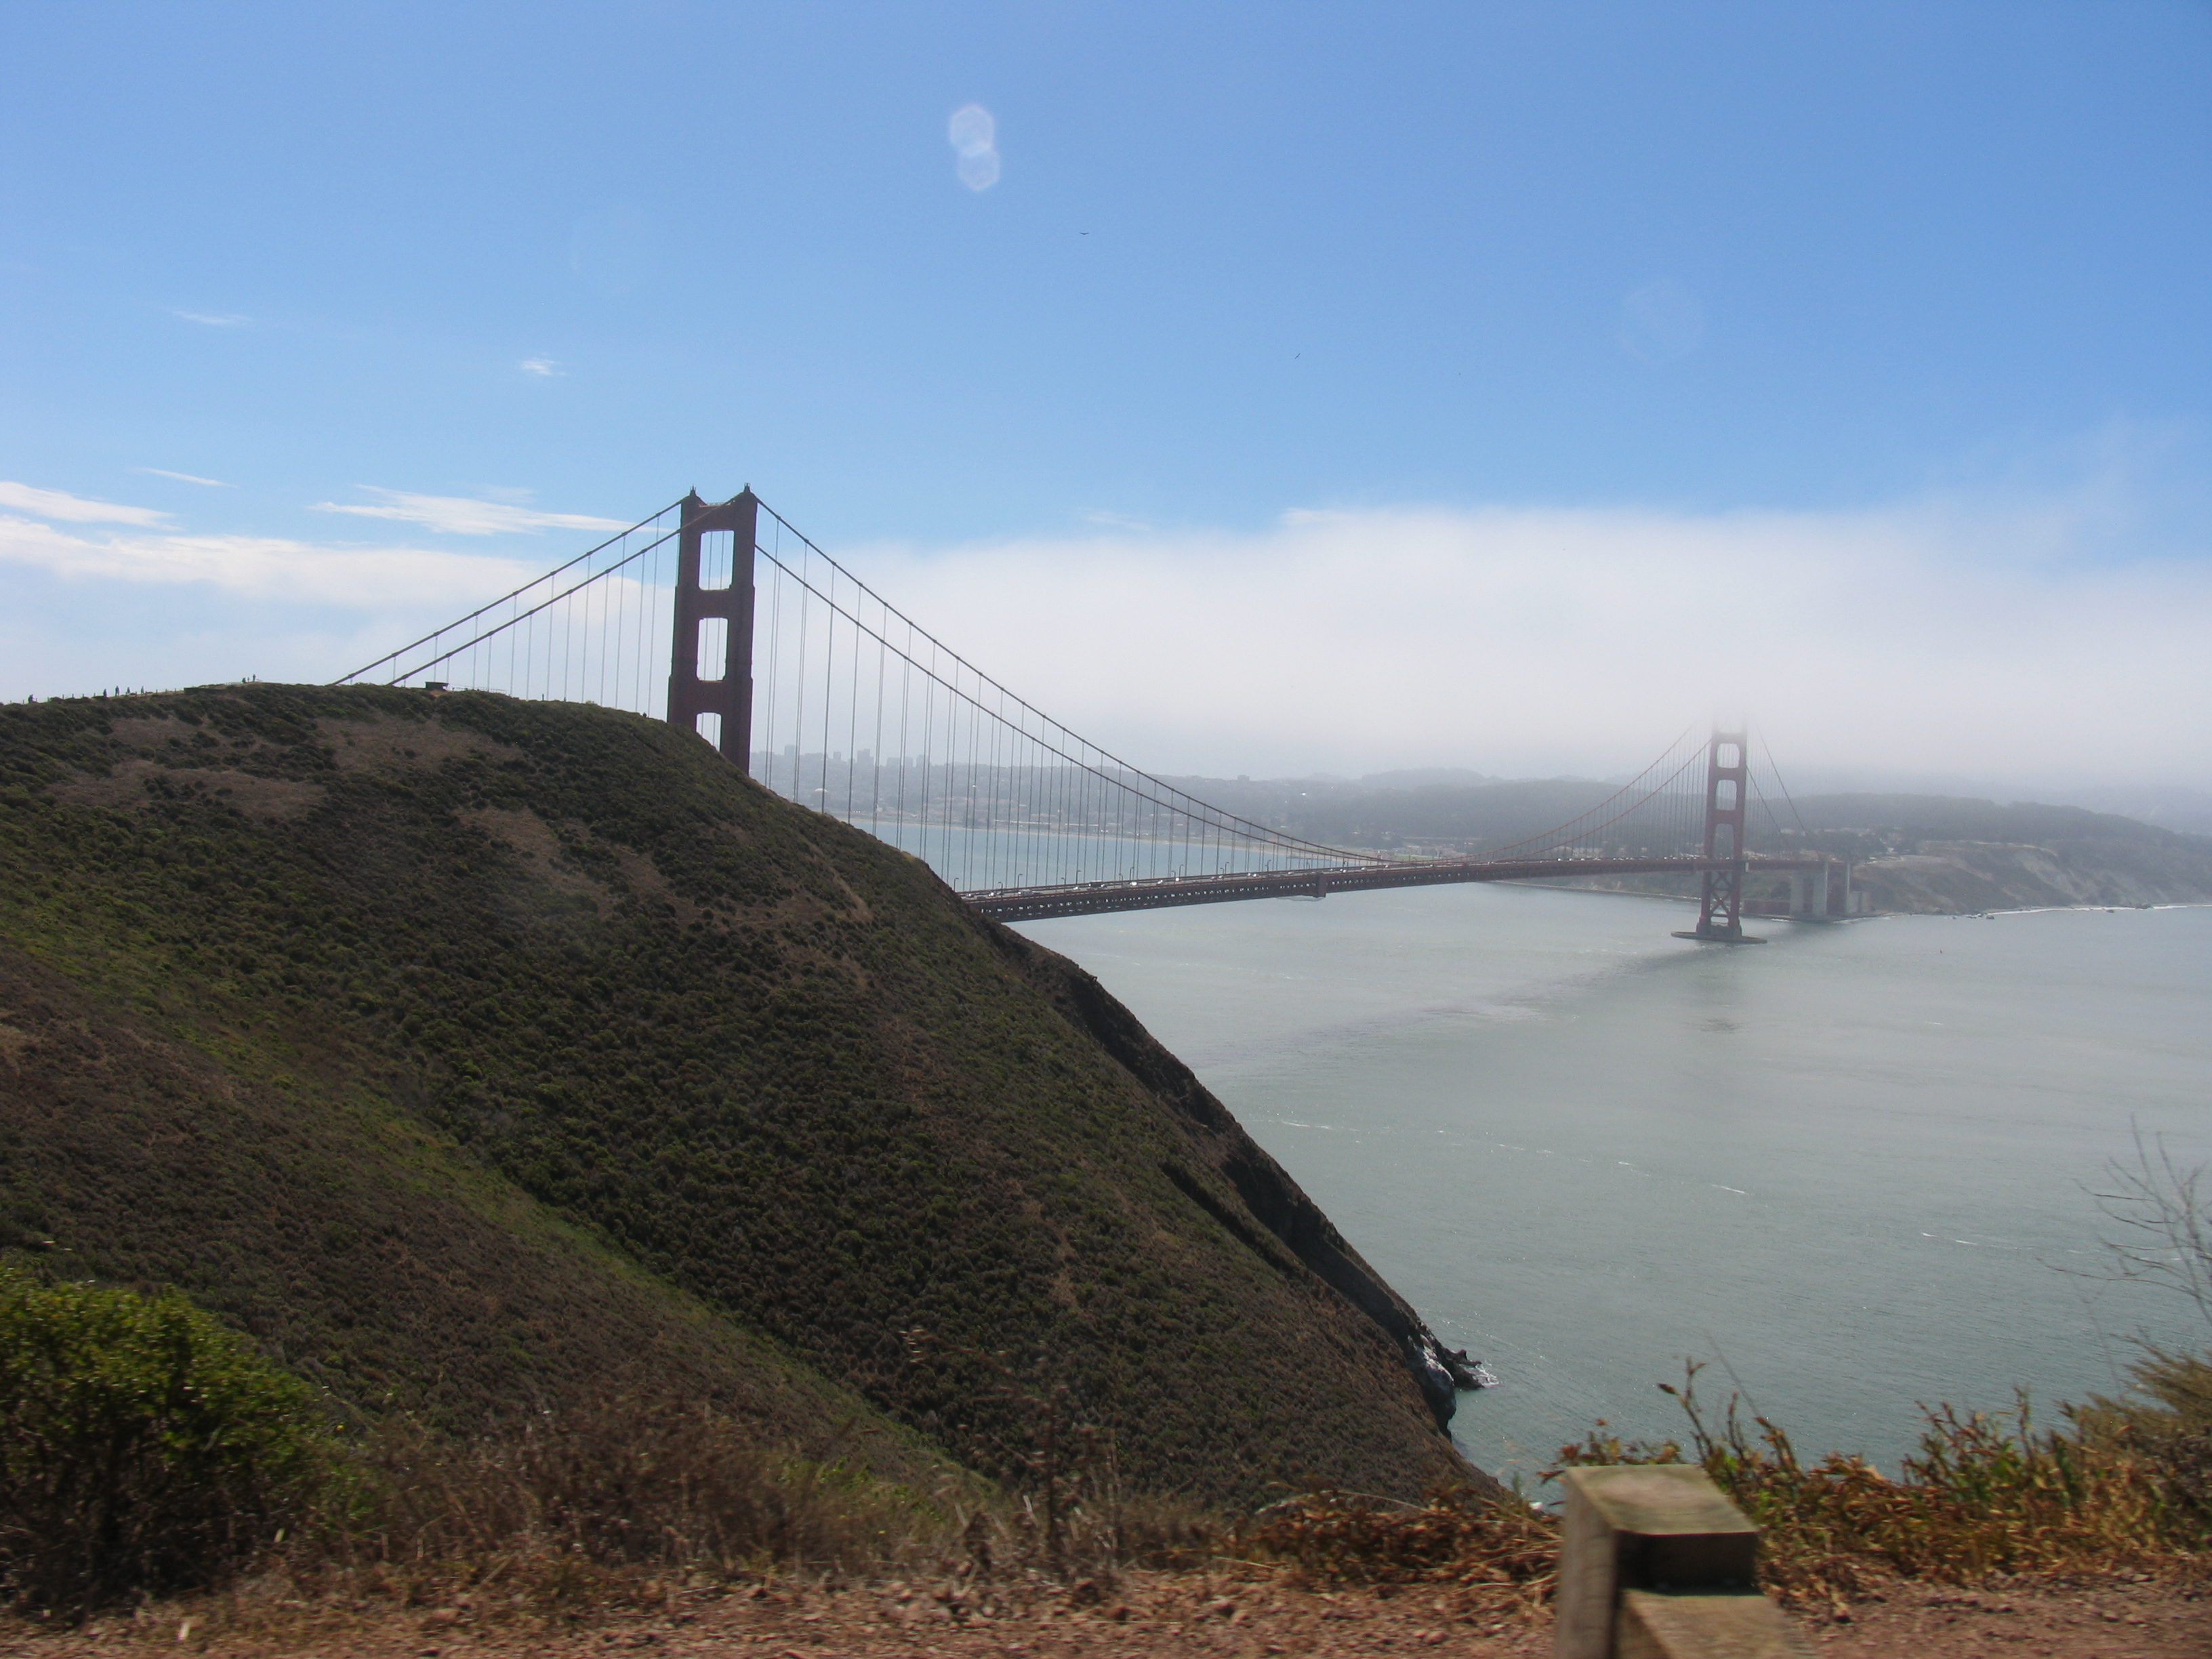 The Golden Gate Bridge from the Marin side.